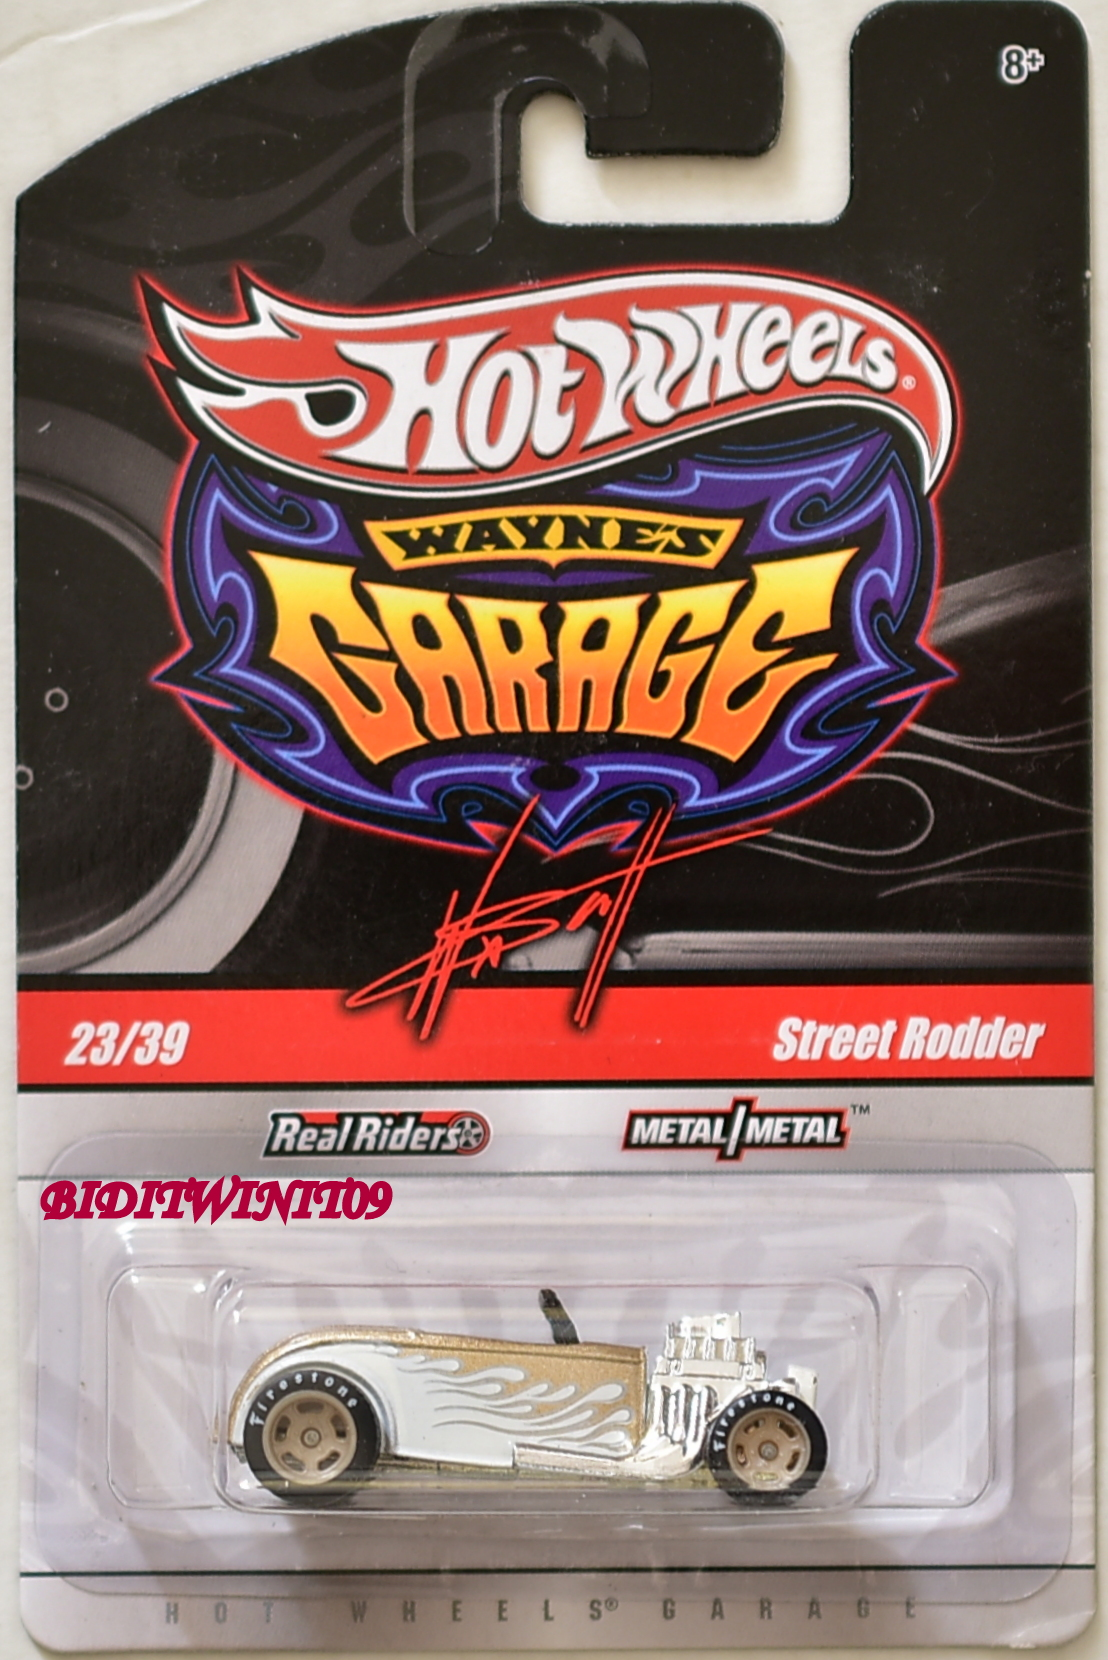 HOT WHEELS WAYNE'S GARAGE STREET RODDER #23/39 WHITE